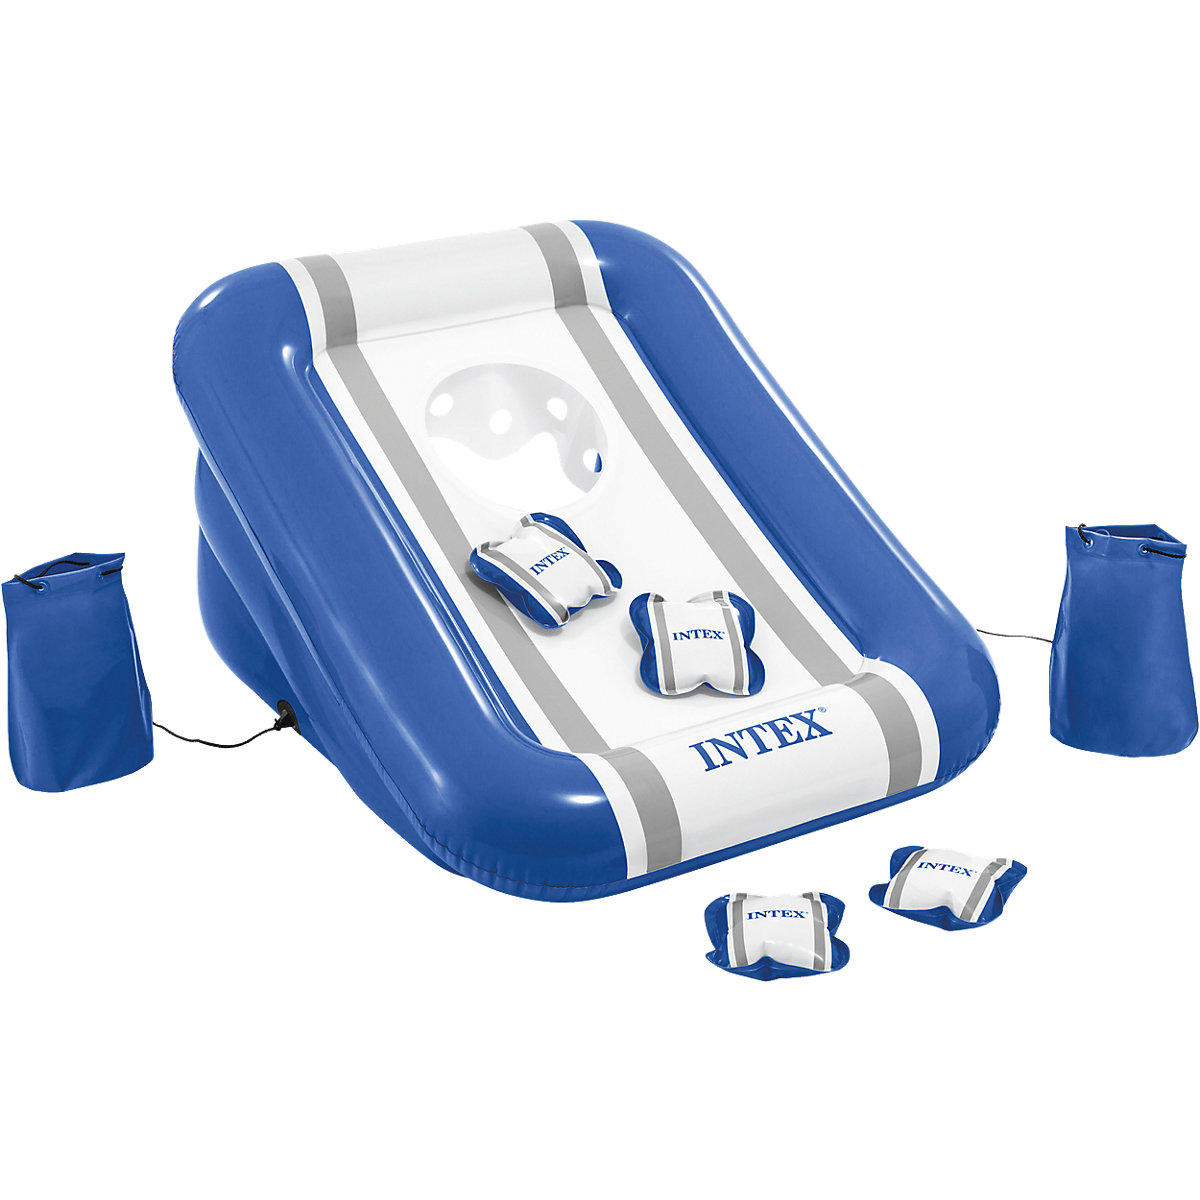 INTEX Inflatable Toys 7225931 Games Toy Trampoline For Children Kids Game MTpromo